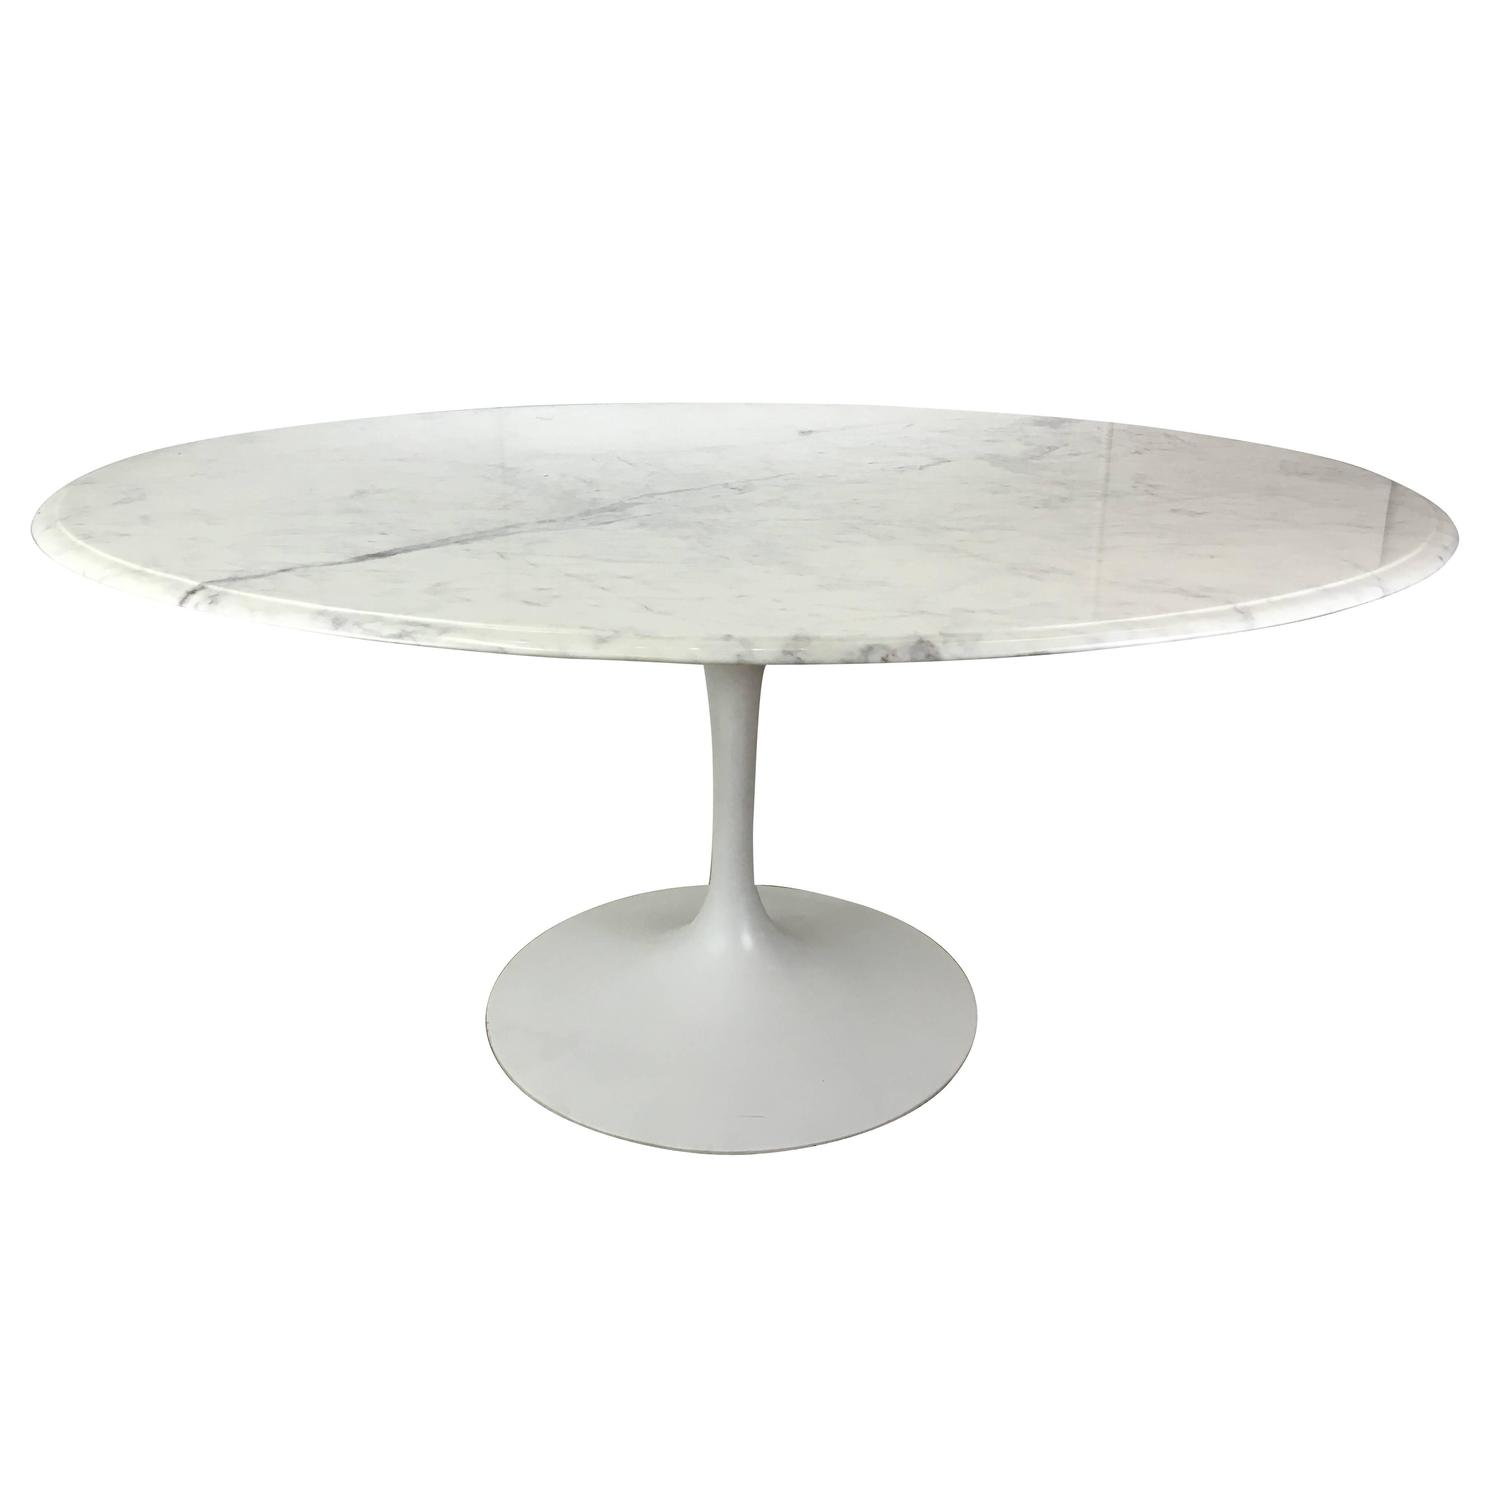 Italian marble top tulip dining table at 1stdibs for Tulip dining table